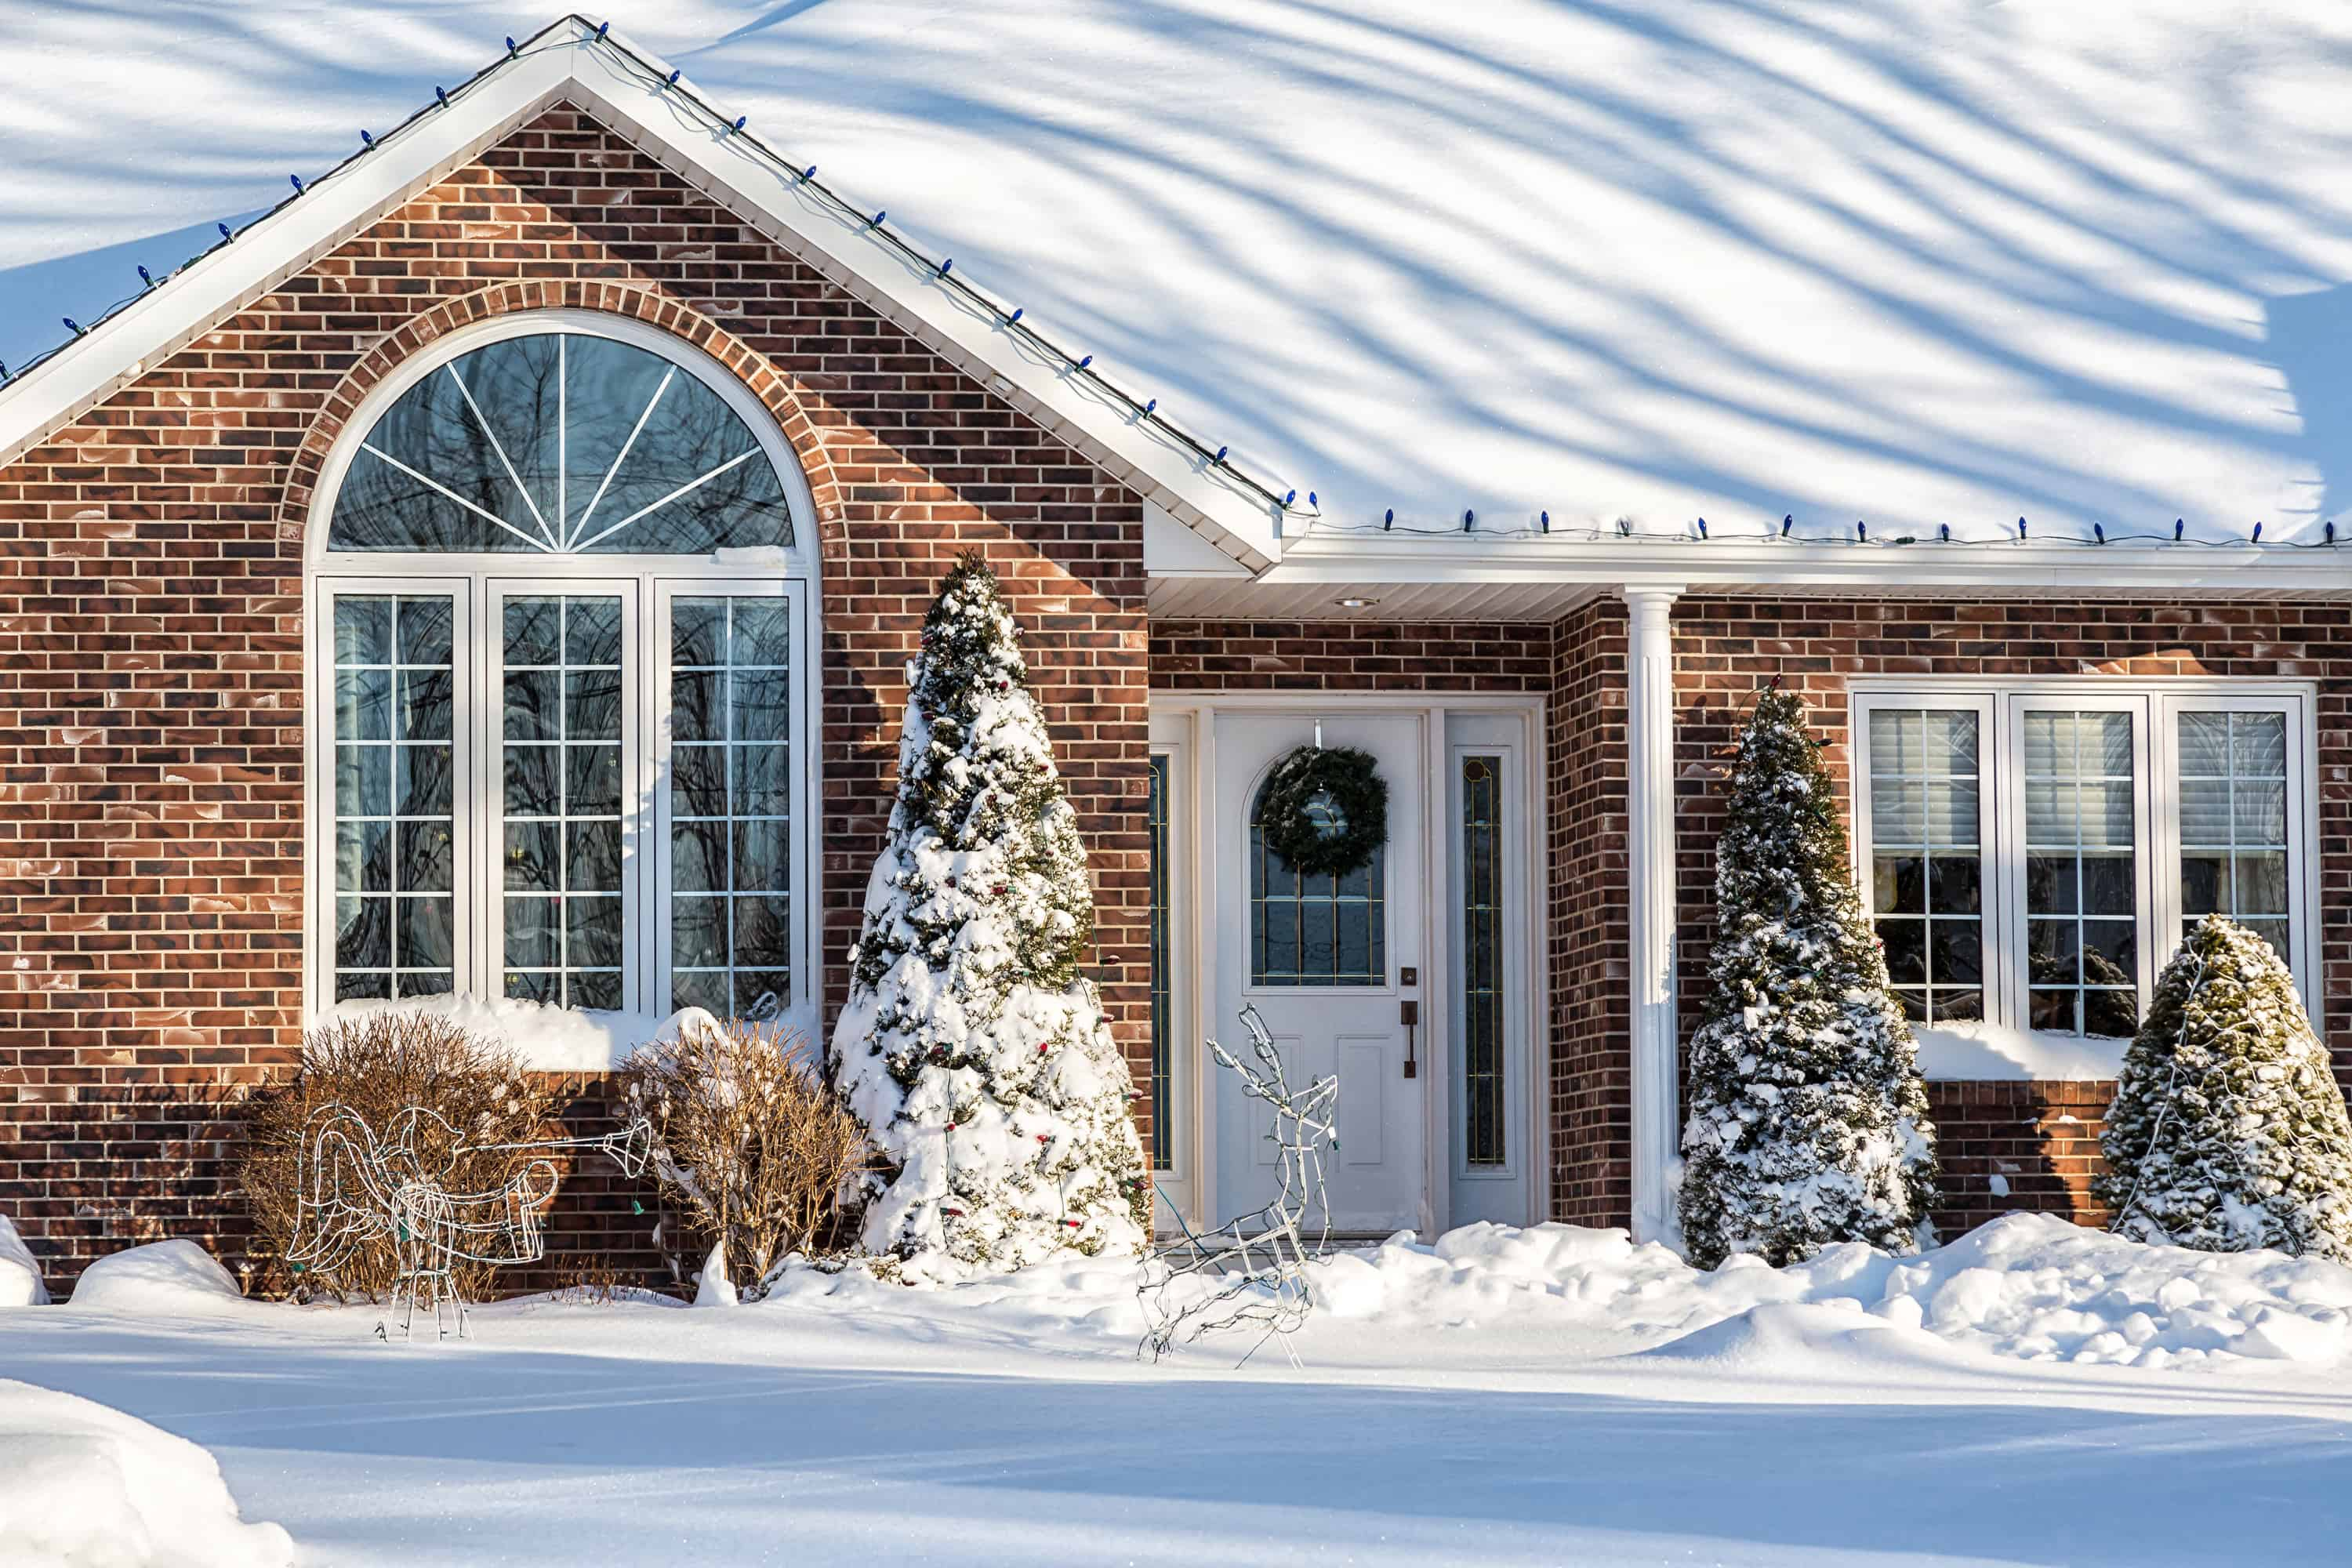 How To Prepare Your Home For Winter In Collierville And Germantown, TN